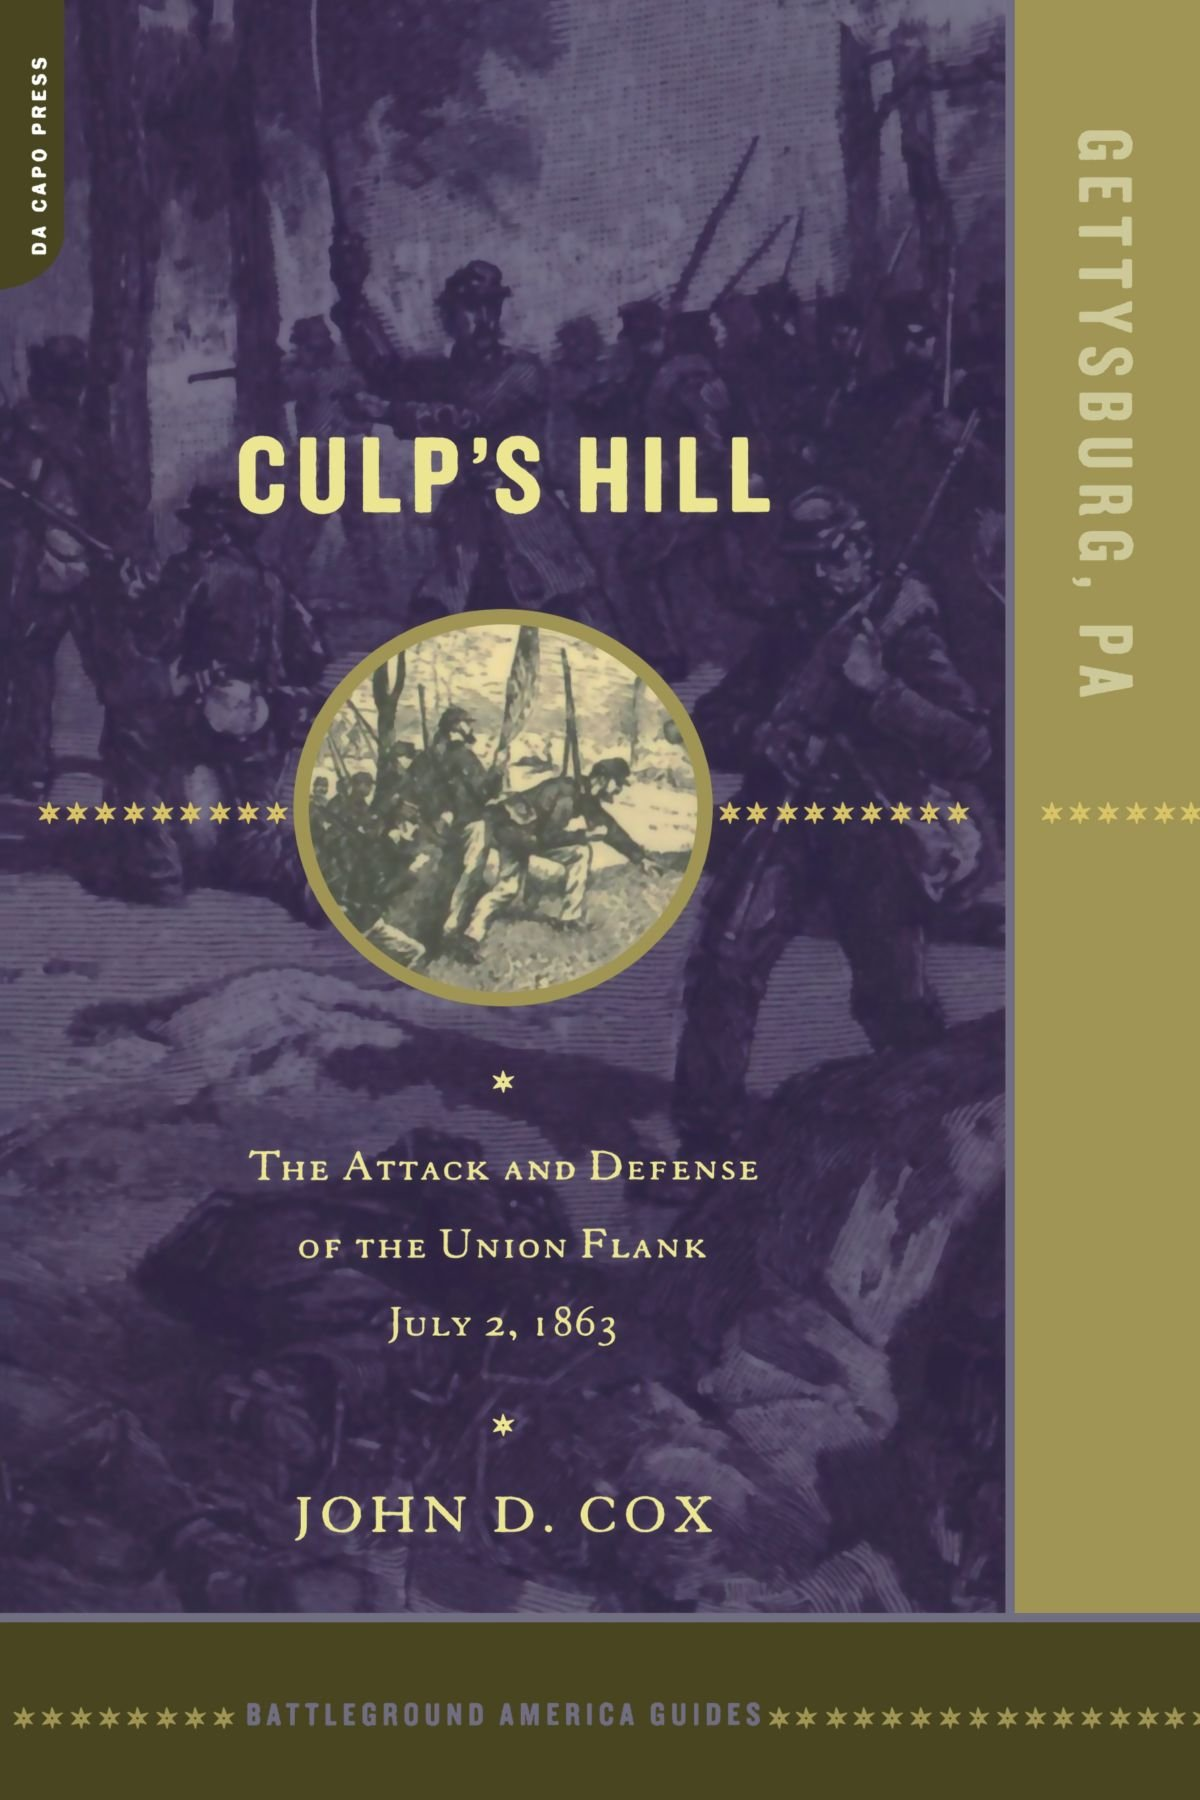 Read Online Culp's Hill: The Attack And Defense Of The Union Flank, July 2, 1863 (Battleground America Guides) ebook